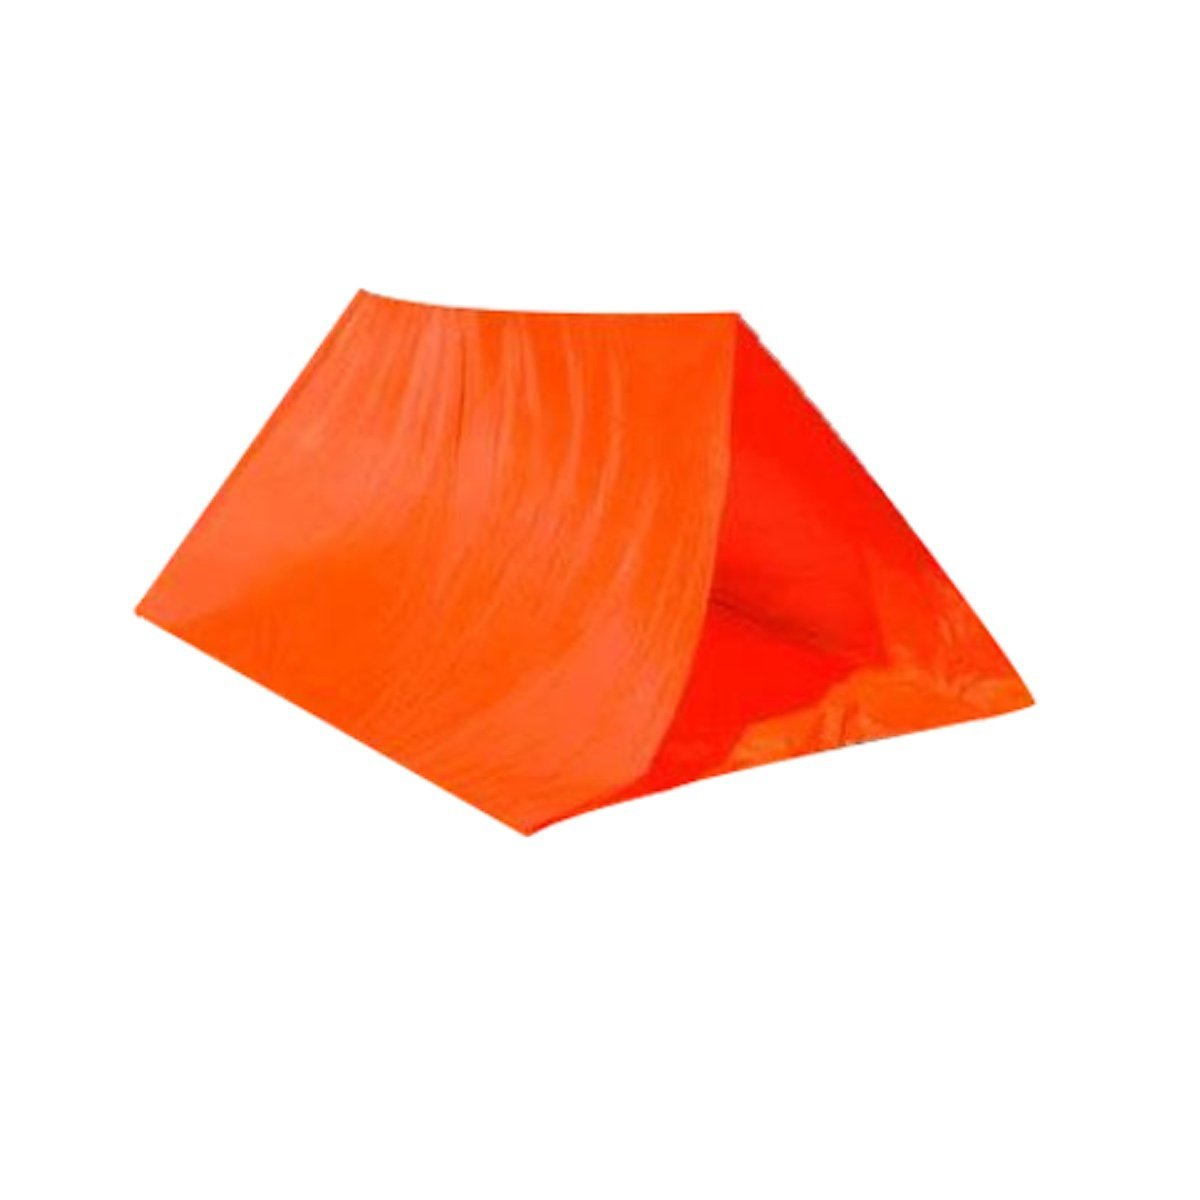 Emergency Outdoor Waterproof Pup Tube Tent Camping Hiking Gear Survival Shelter, A great gift for a camping and hunting lover, or to take on... by